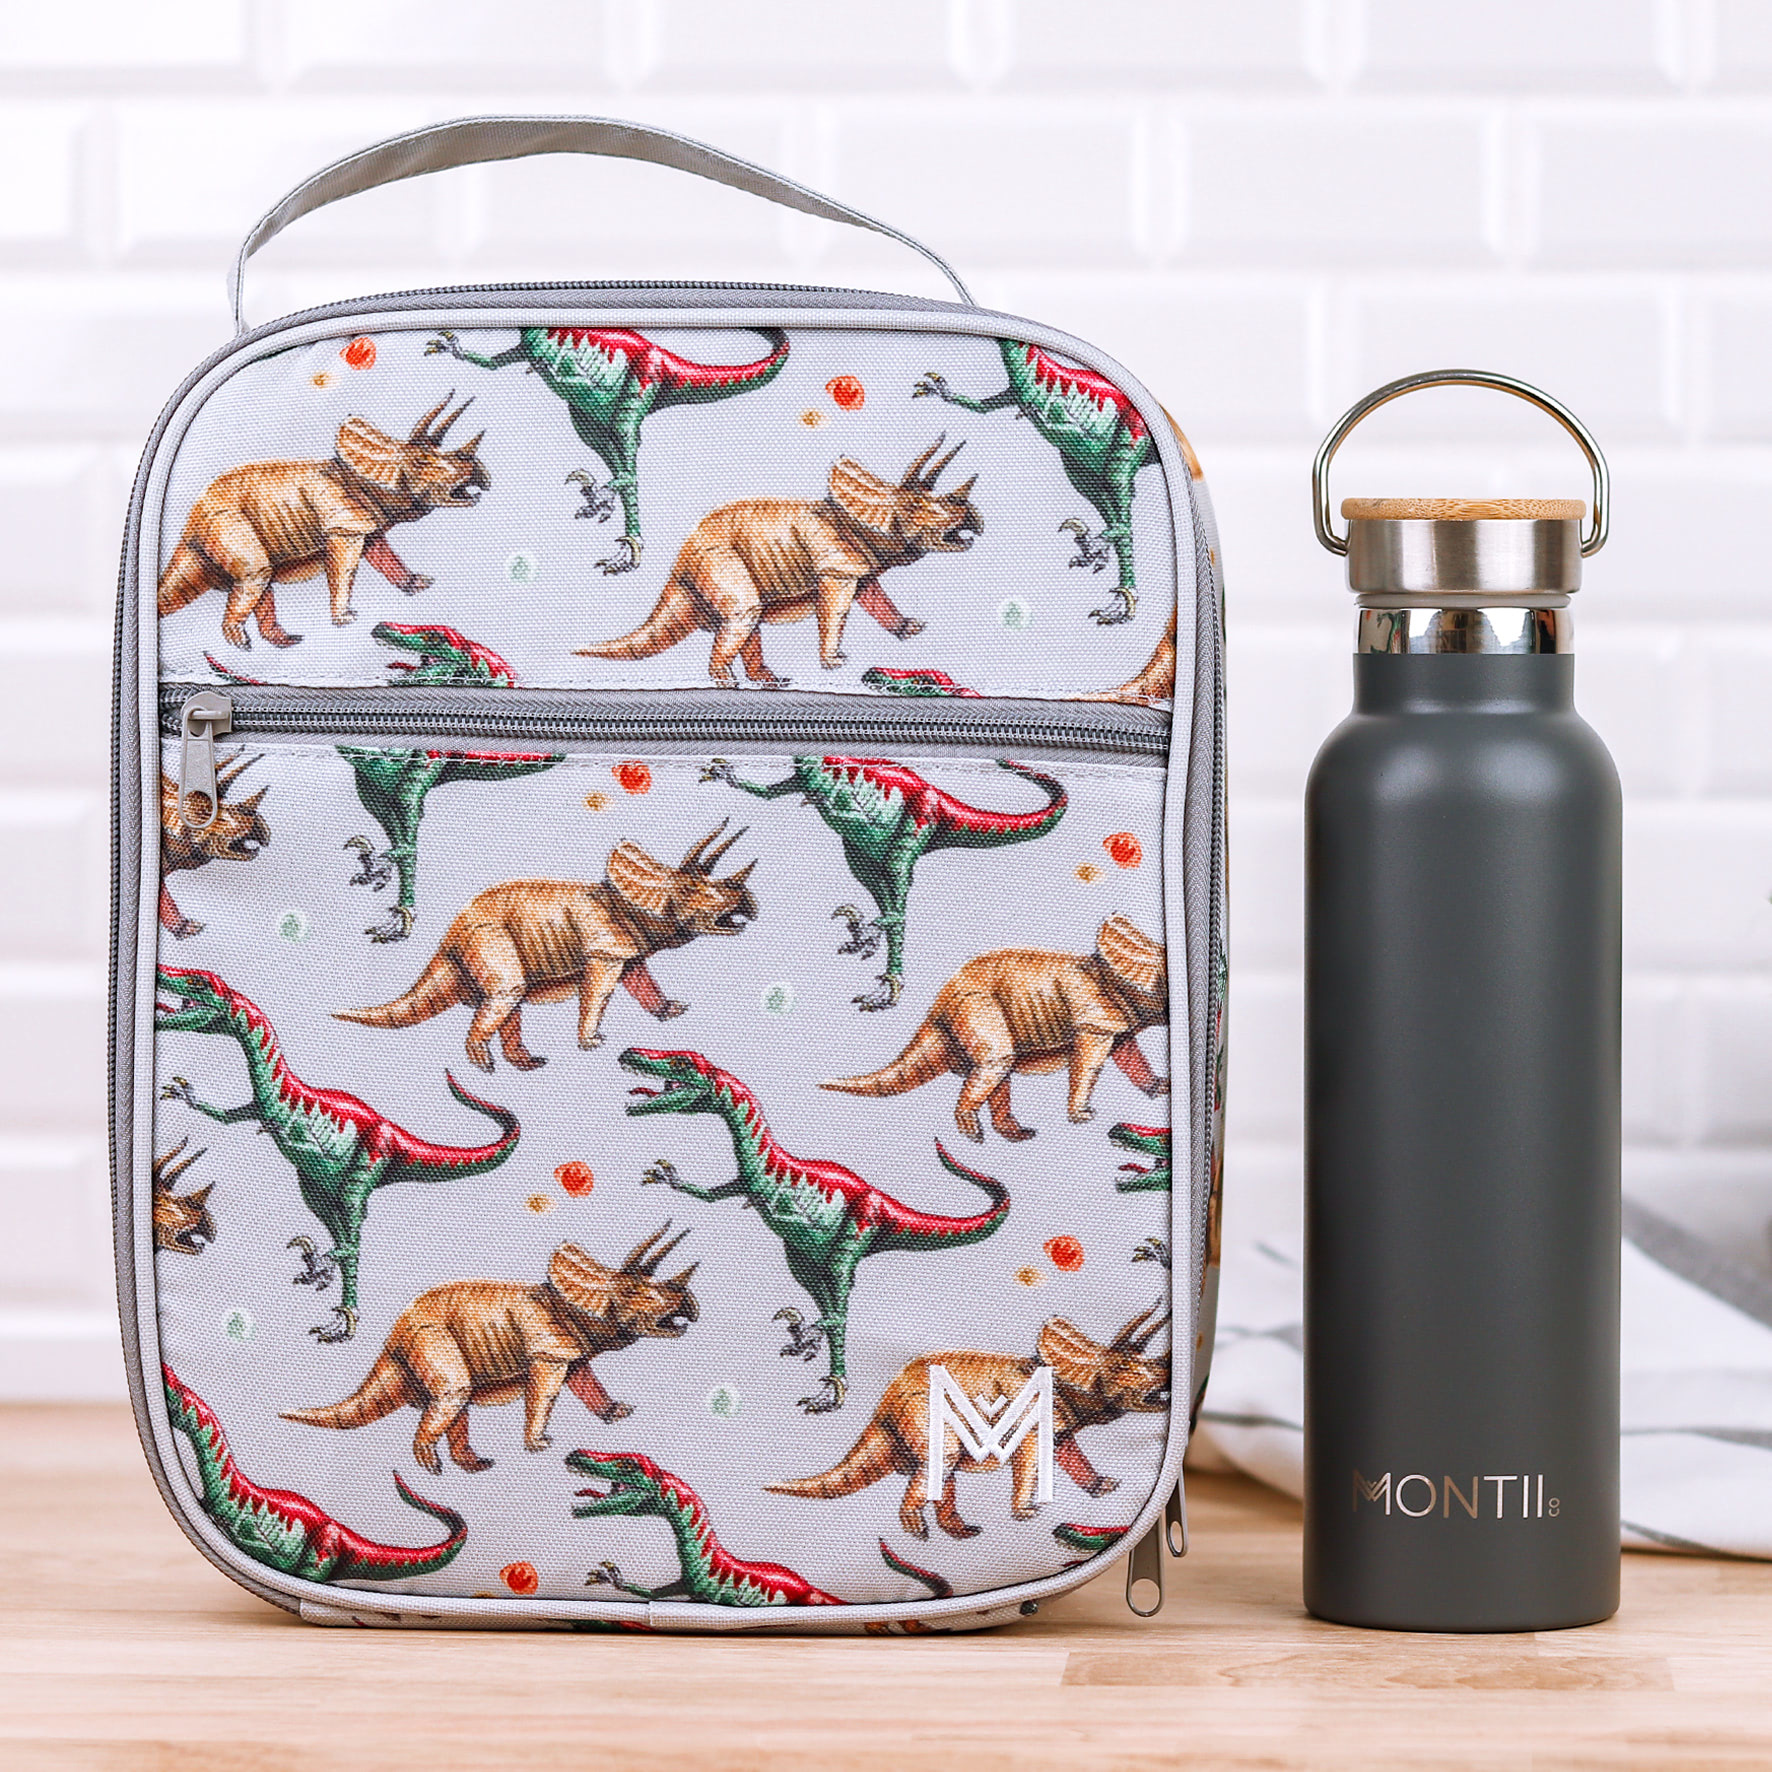 Montii insulated Lunch Bag - Dino-7